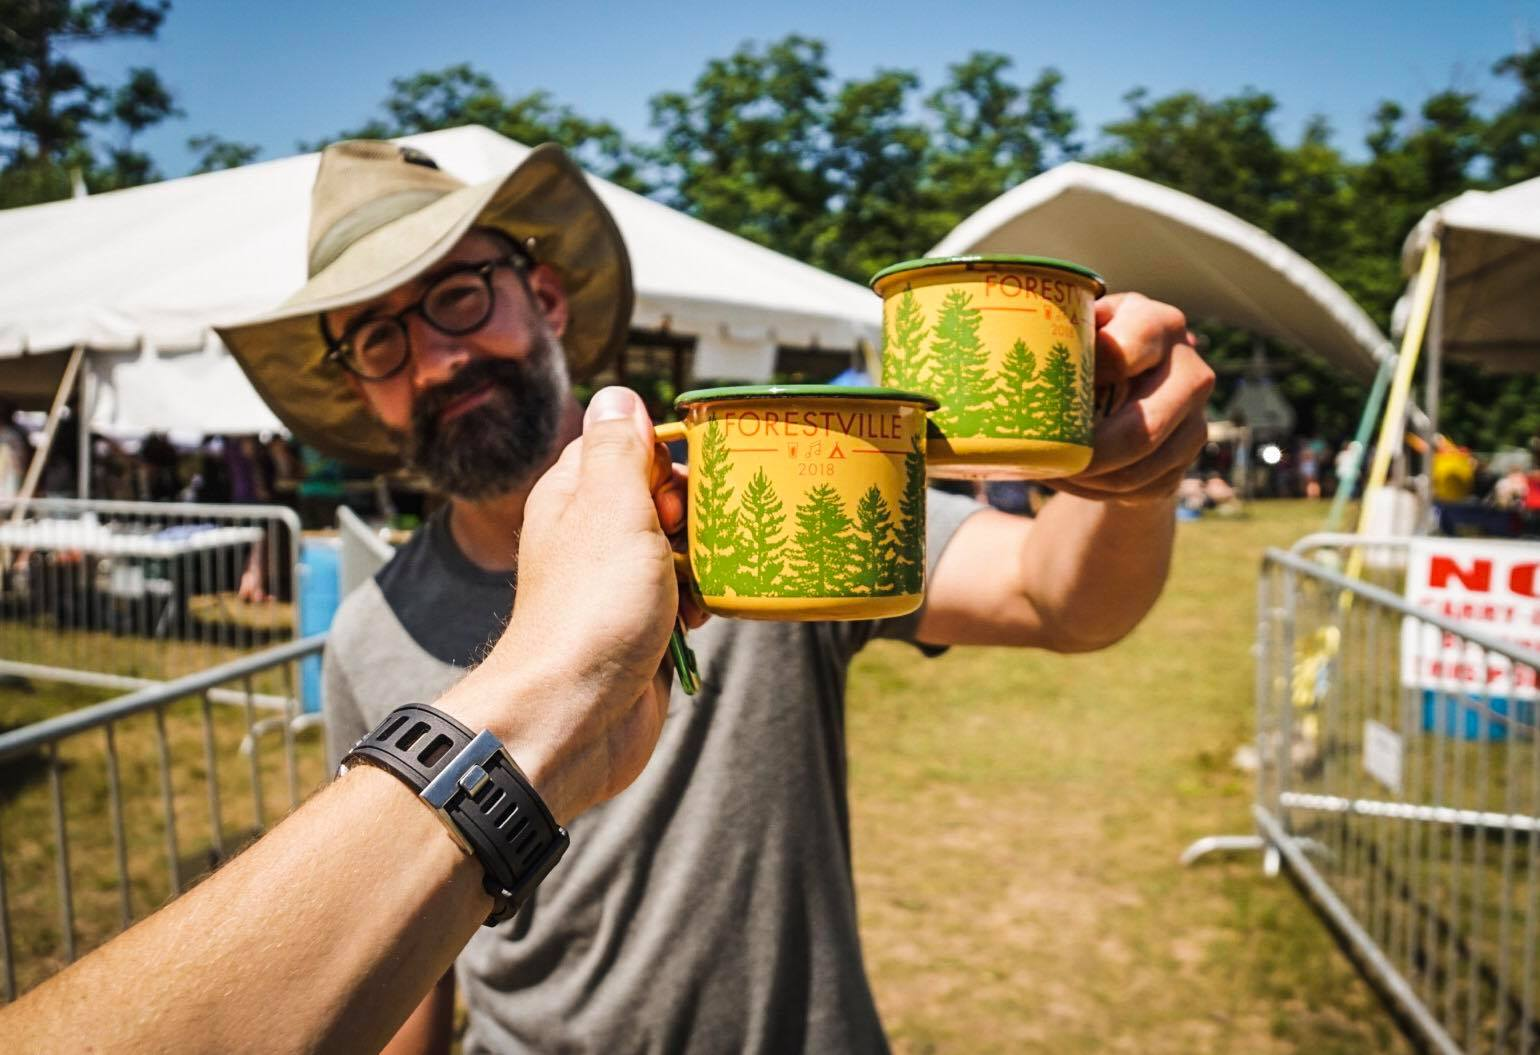 SeMi Bluegrass: Craft Beer and Live Music Under the Trees